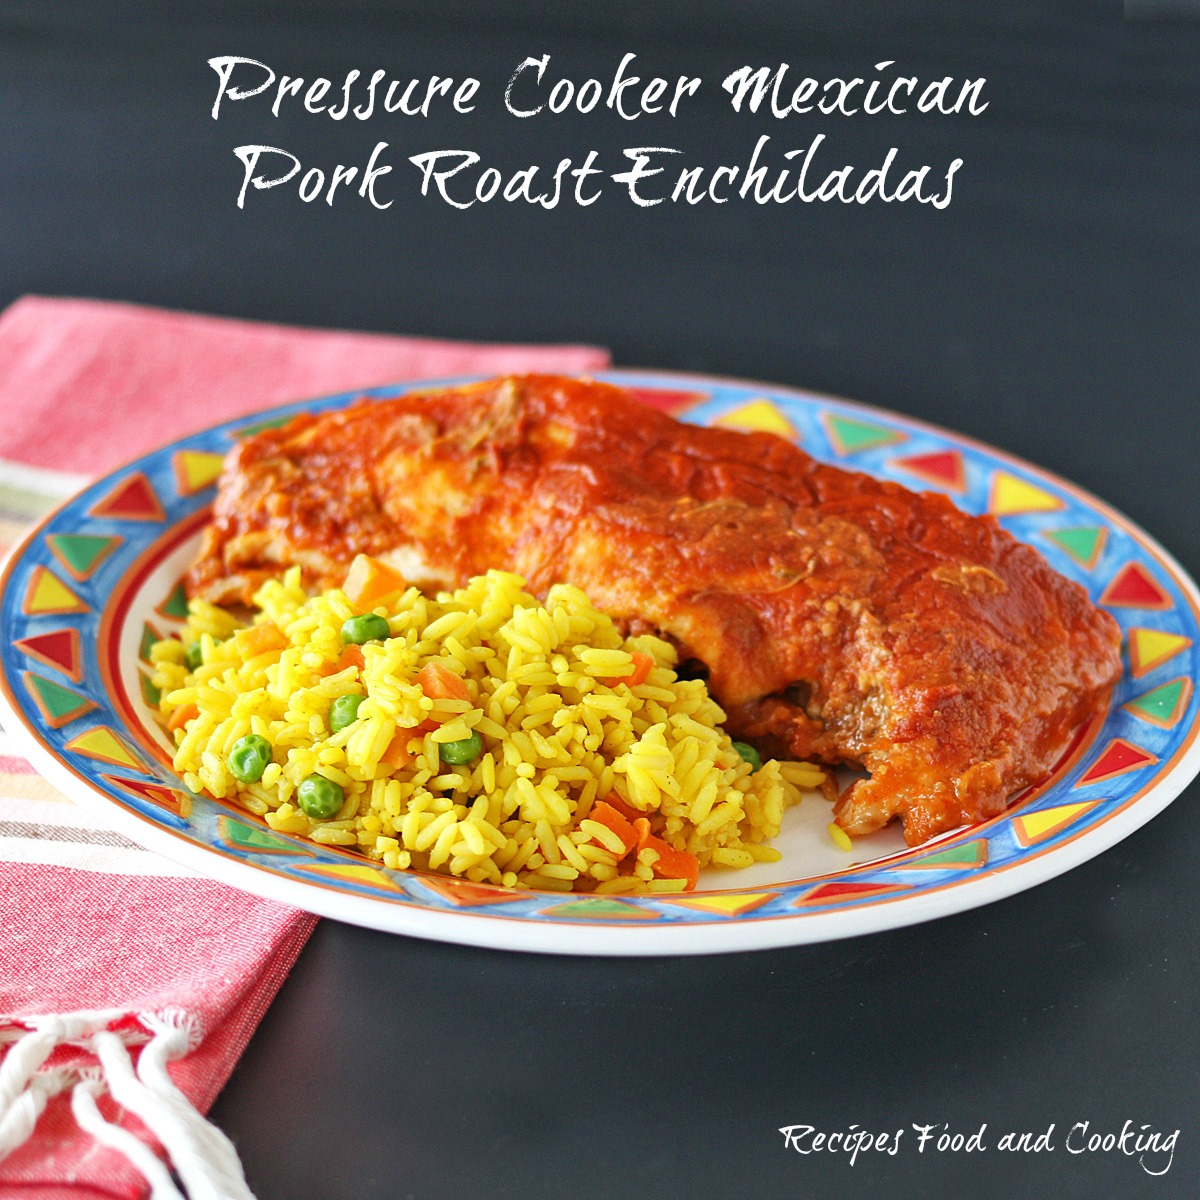 Mexican Pork Roast Enchiladas